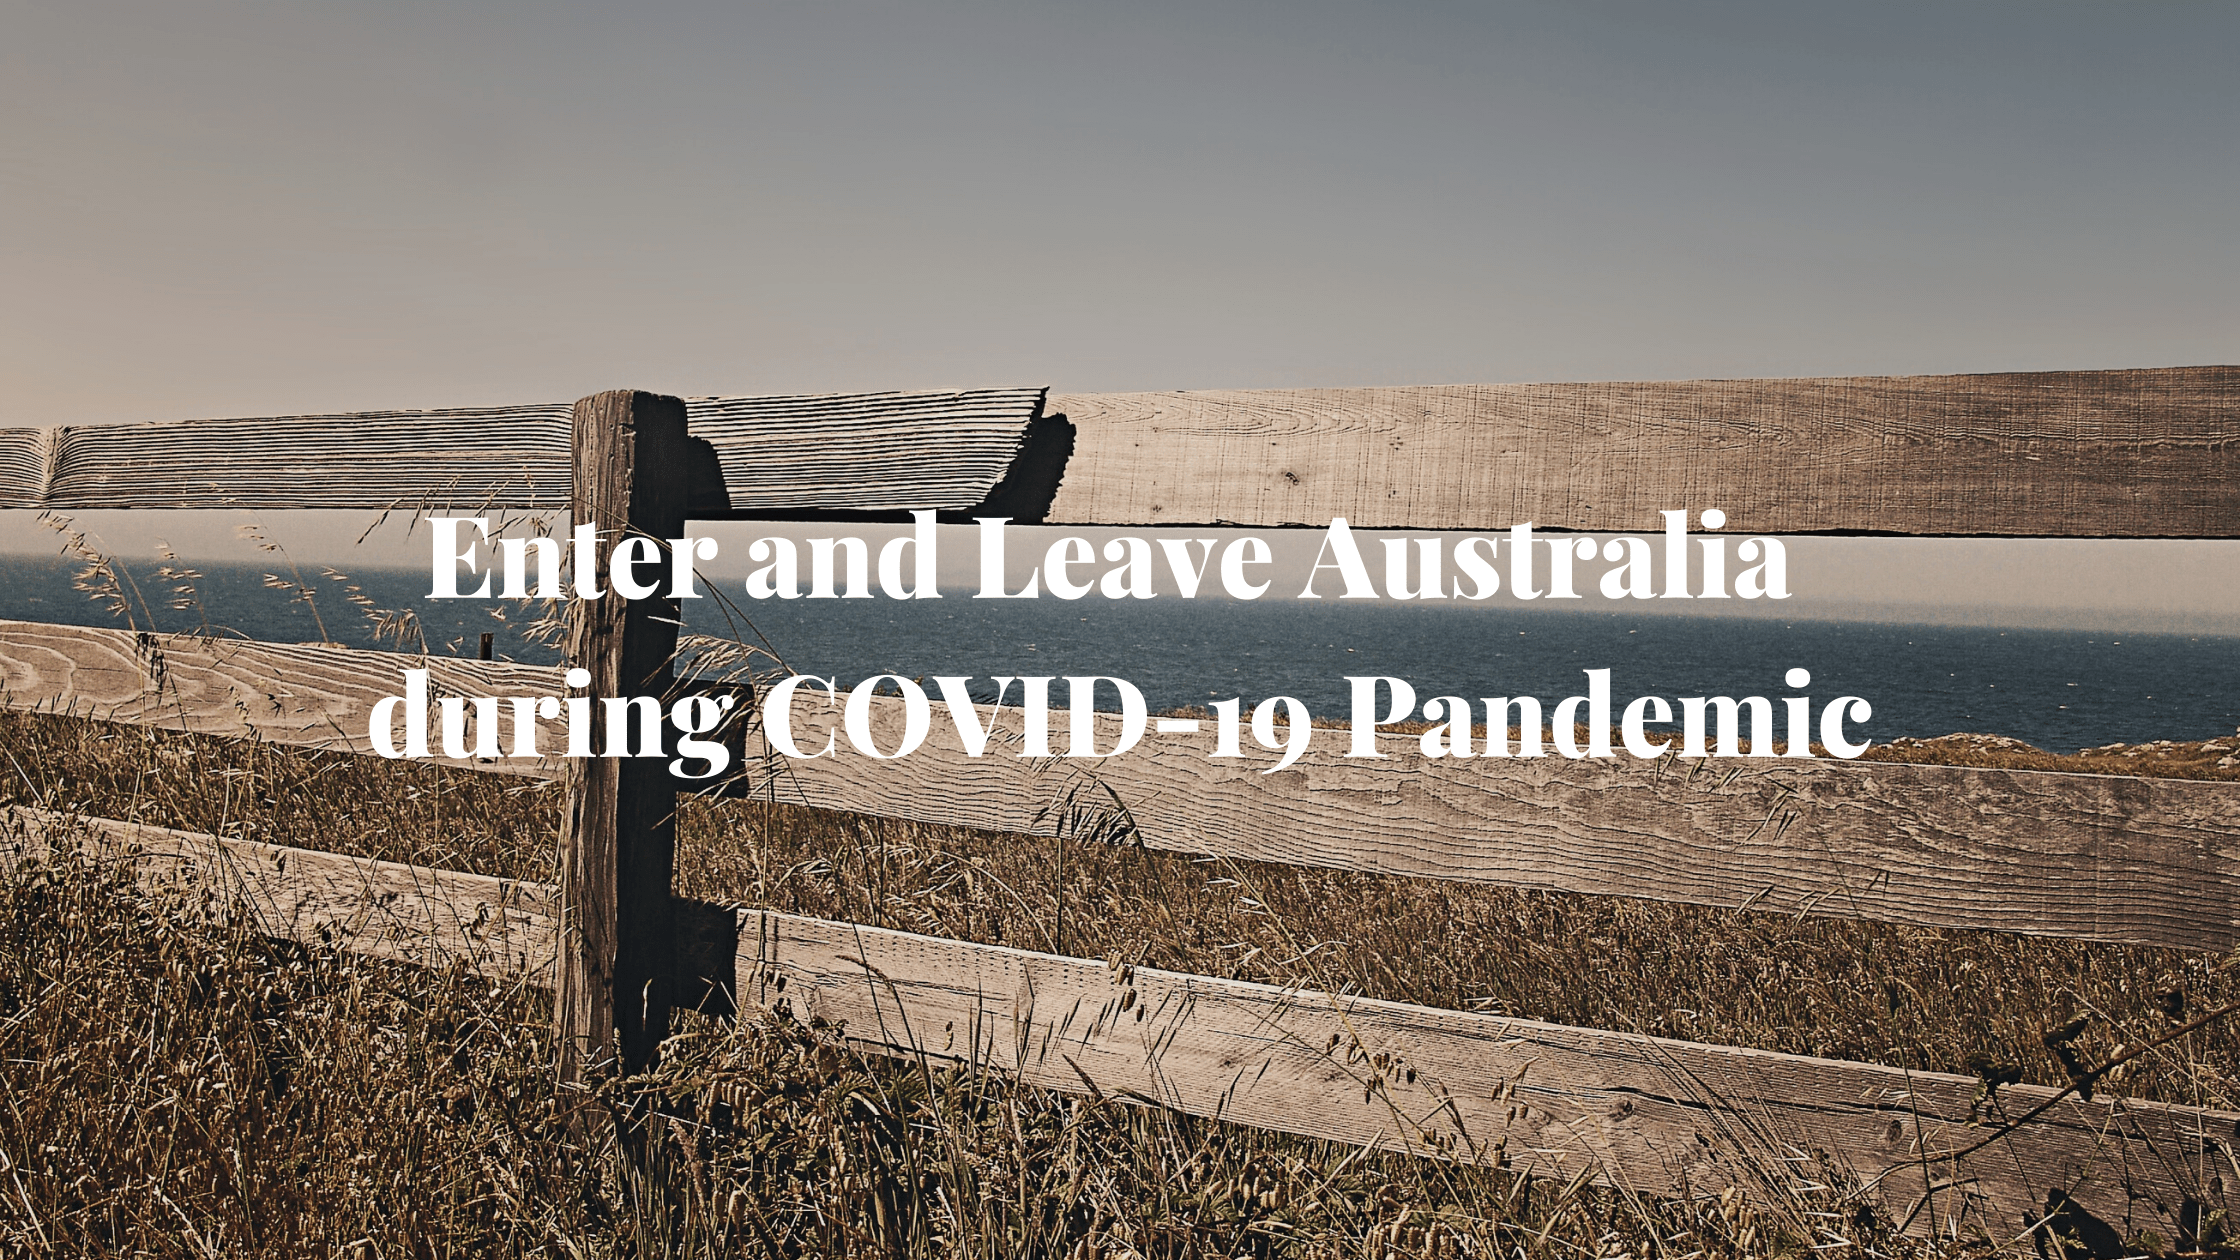 Enter and Leave Australia during COVID-19 Pandemic 2